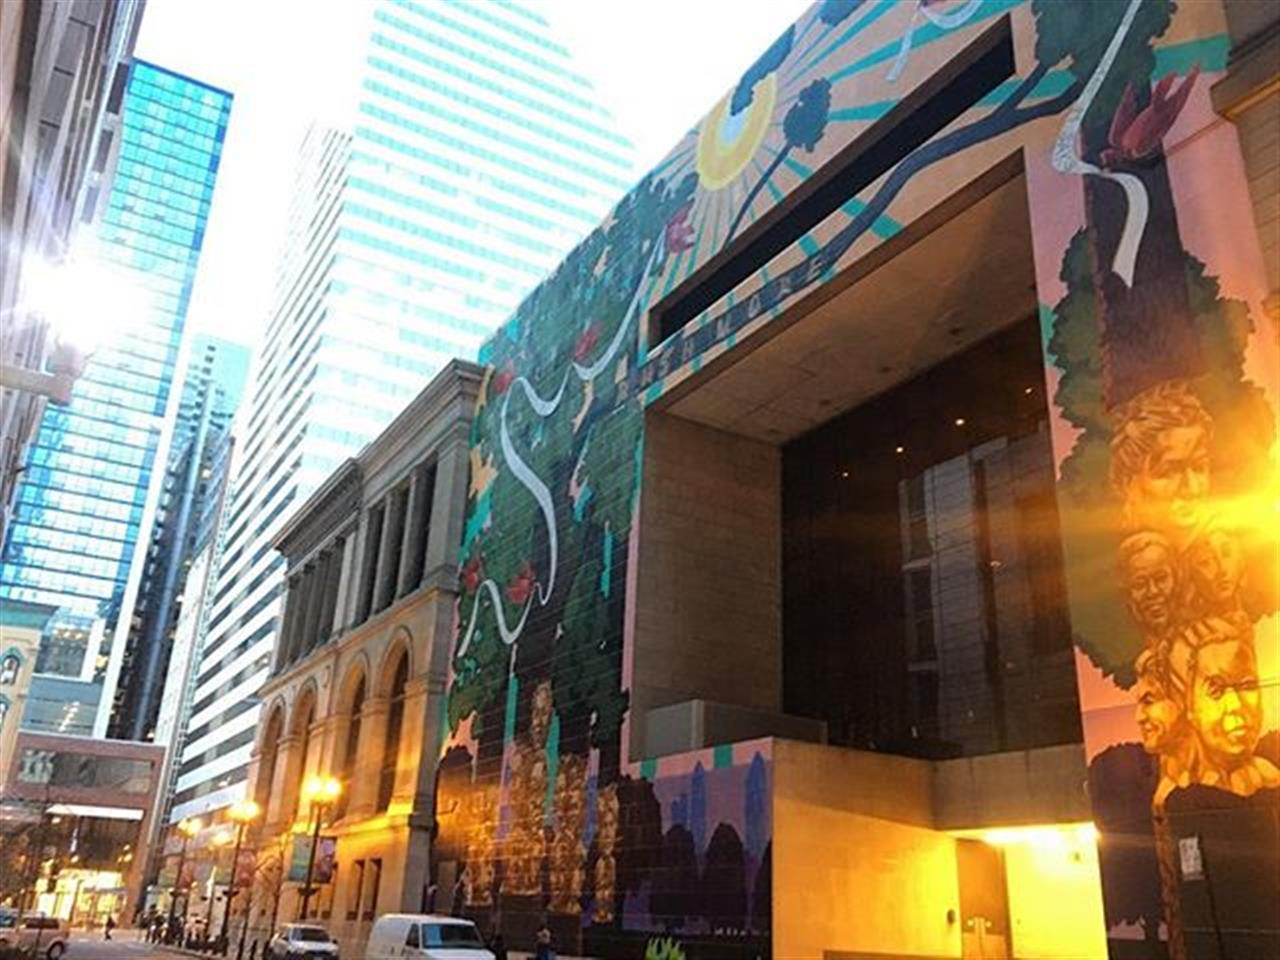 Have you seen the back of #Chicago Cultural Center? Mural magic. #publicart #chicagohistory #maggiedaleypark #loop #leadingrelocal #bairdwarner